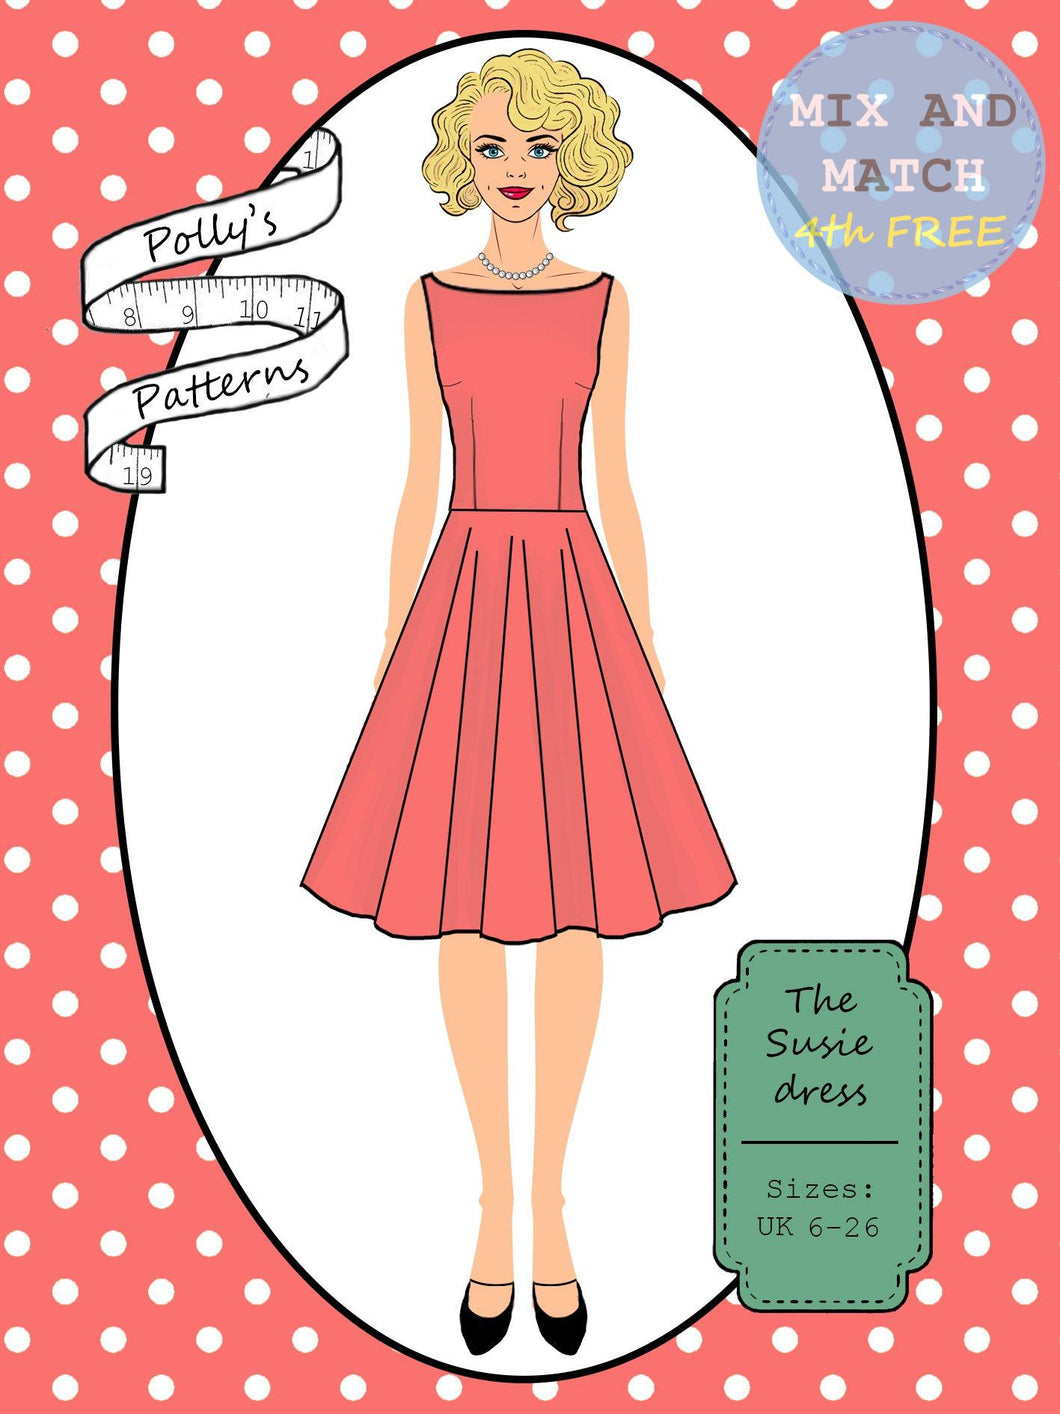 Copy of Polly's patterns - The Susie Dress - Pattern Shop